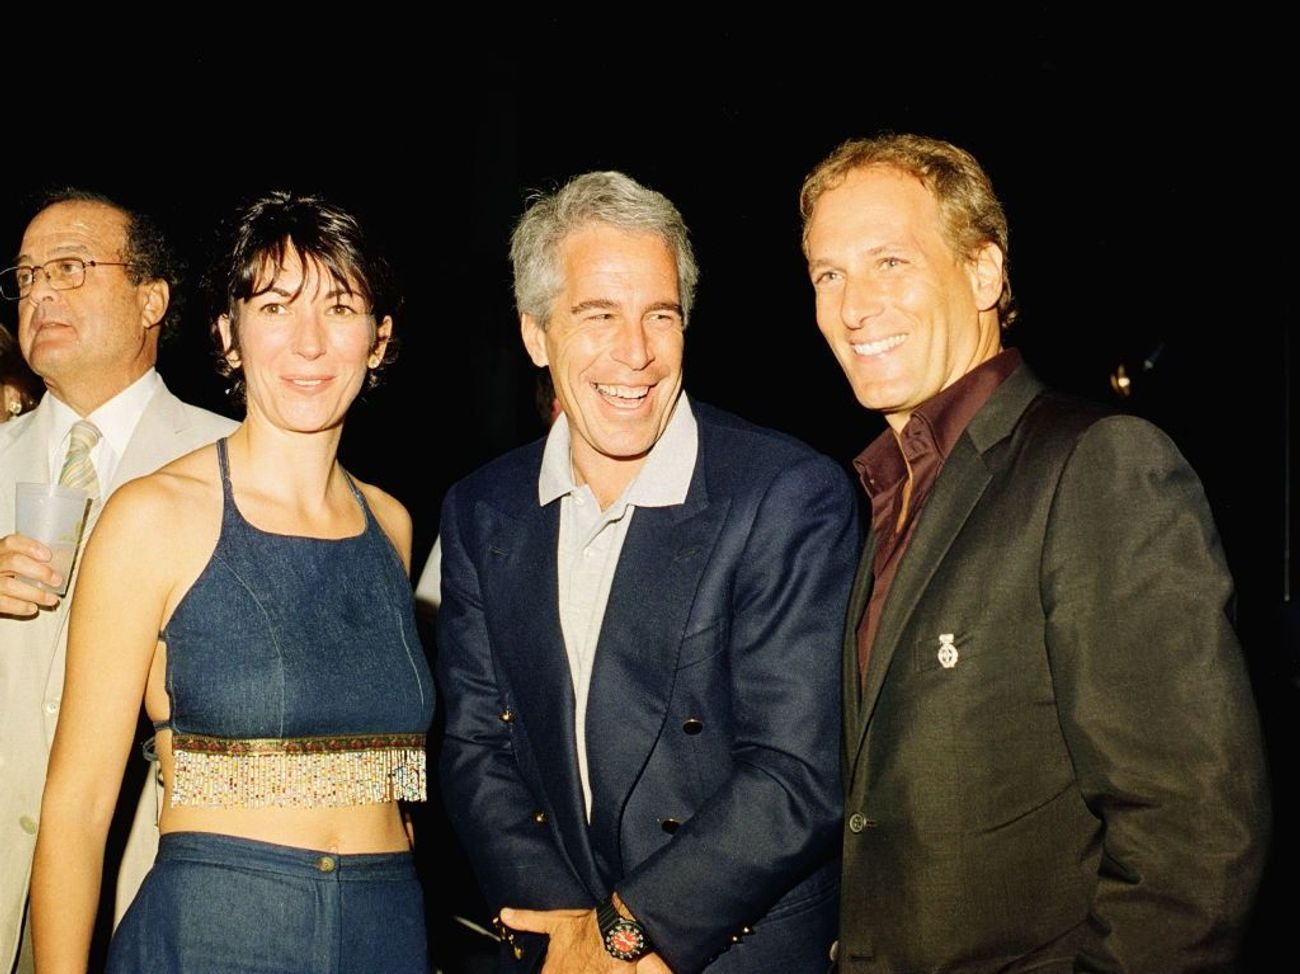 Ghislaine Maxwell, British socialite accused of helping Jeffrey Epstein, reportedly hides in Israel